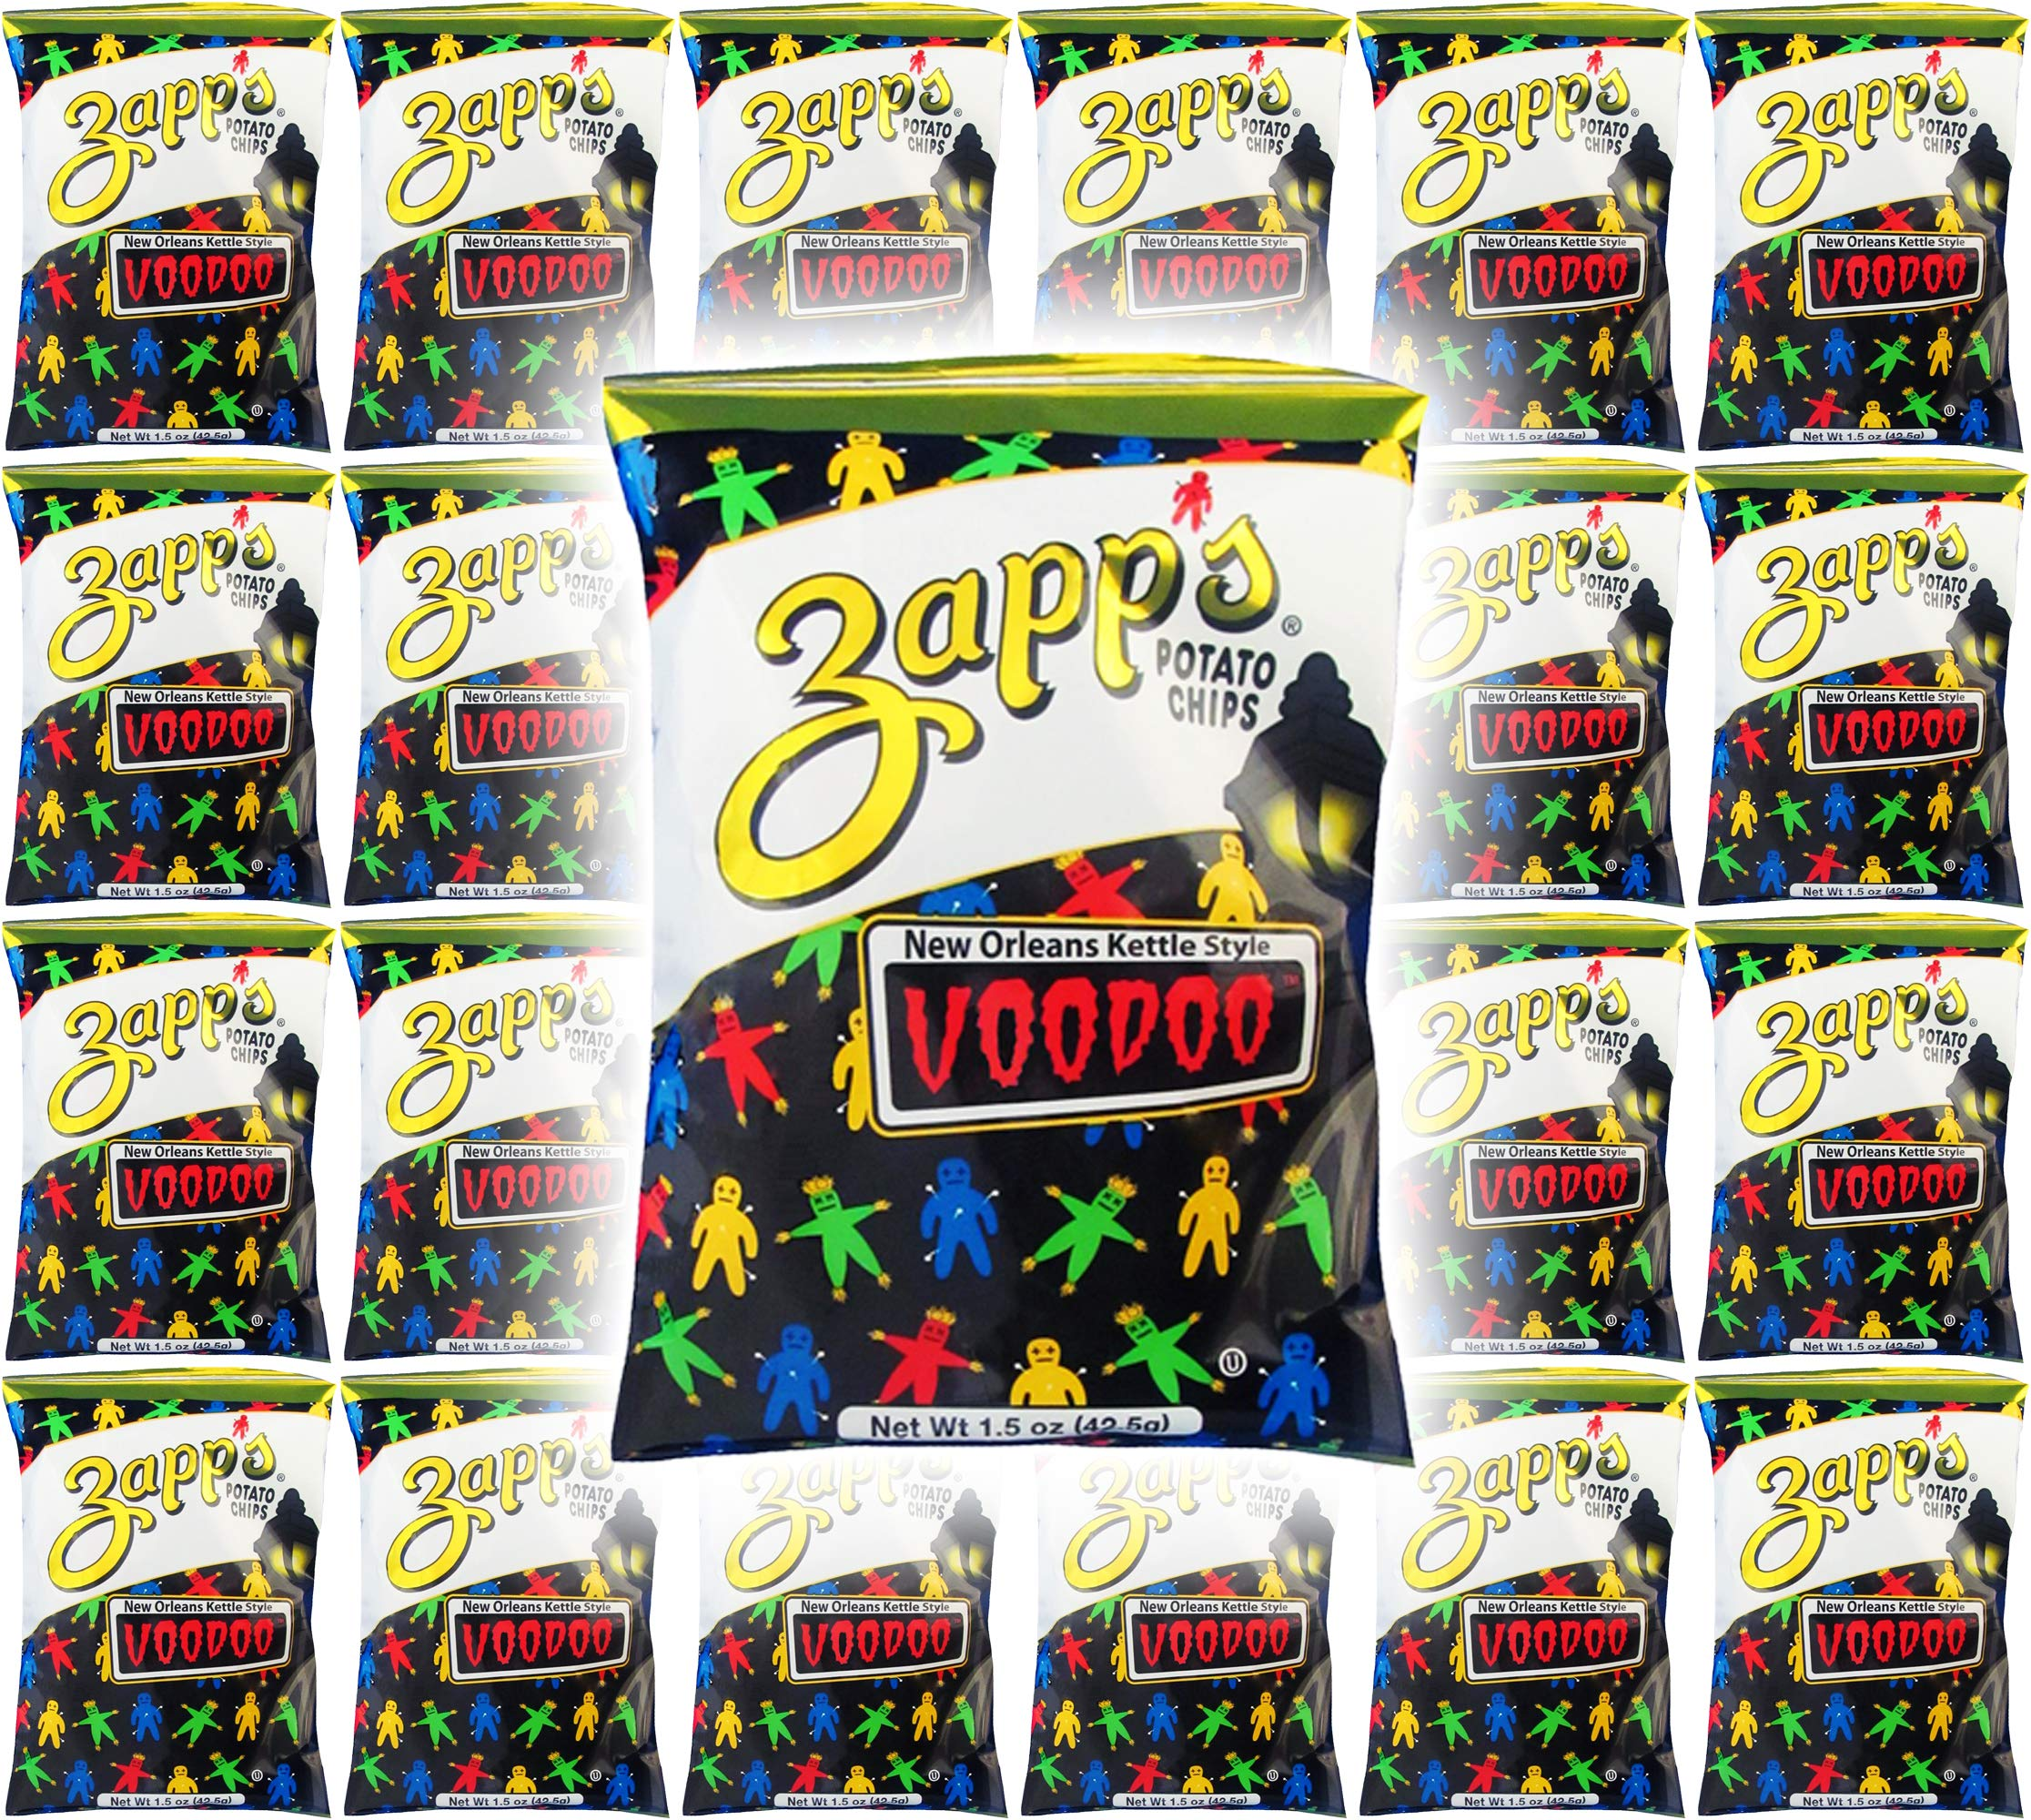 Zapp's Potato Chips, VooDoo New Orleans Kettle Style, 1.5oz (Pack of 24, Total of 36 Oz) by VooDoo Chips